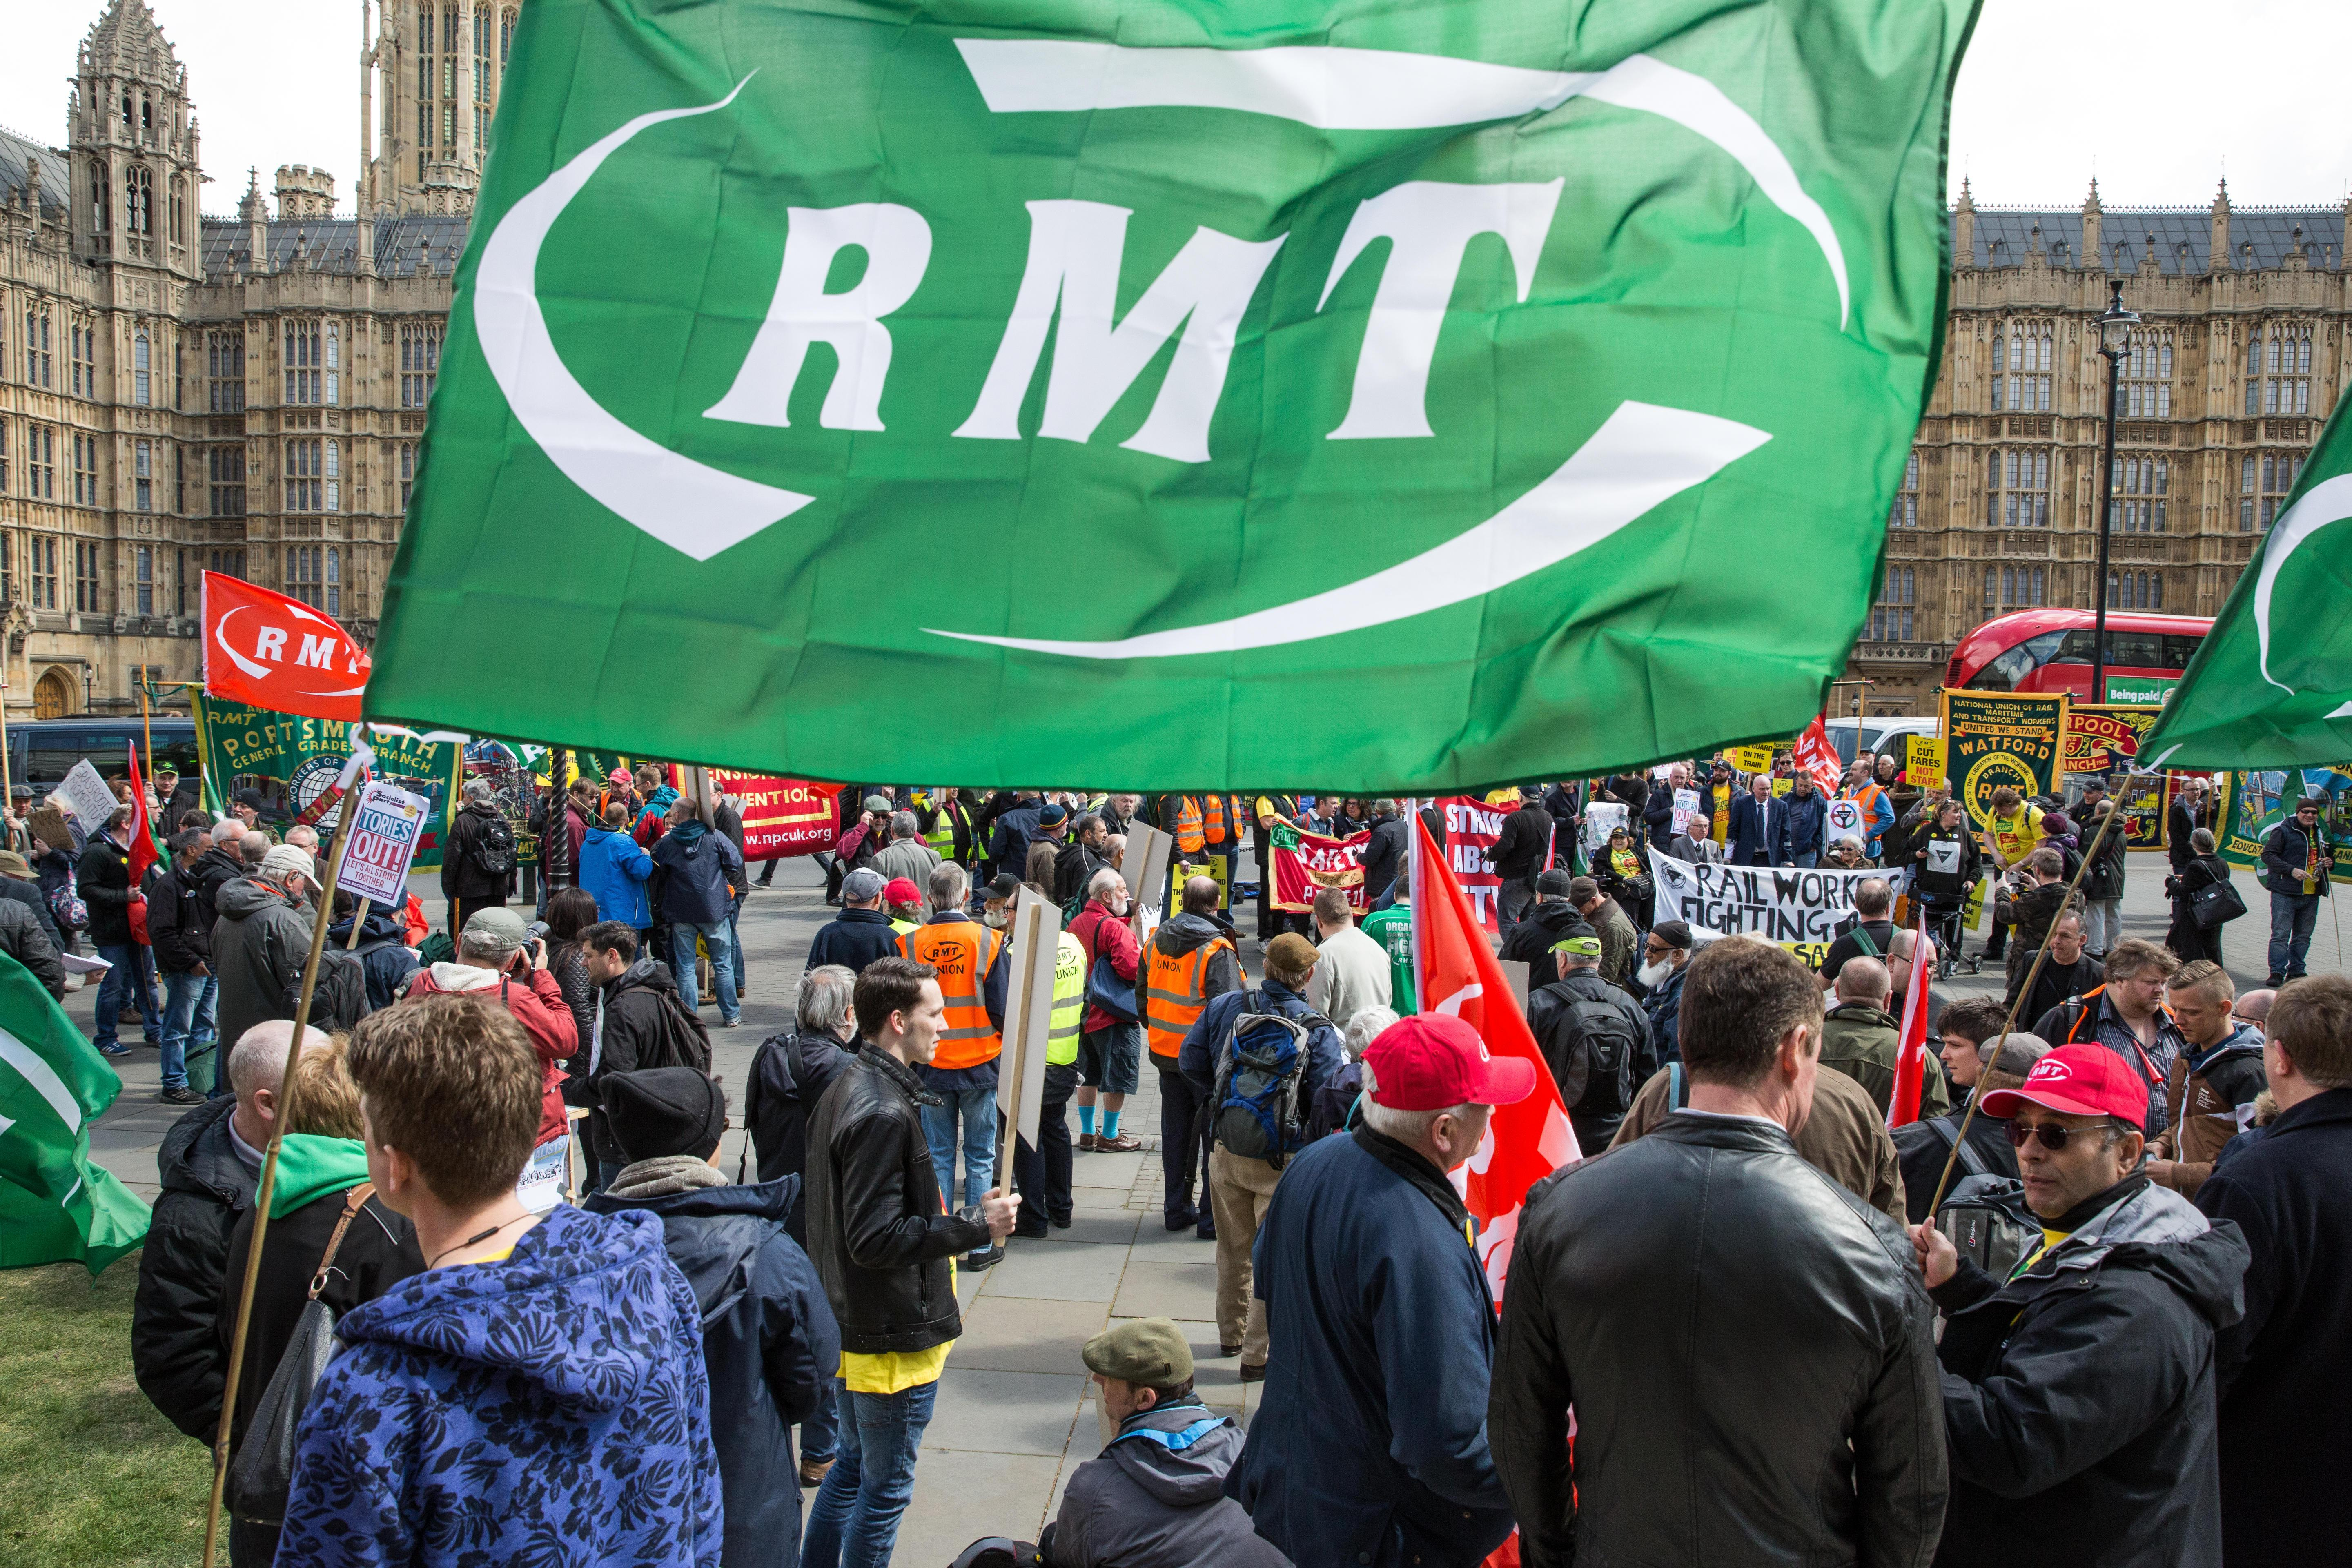 RMT bosses who called month-long strike accused of short changing train drivers and guards by £50 over dispute handout